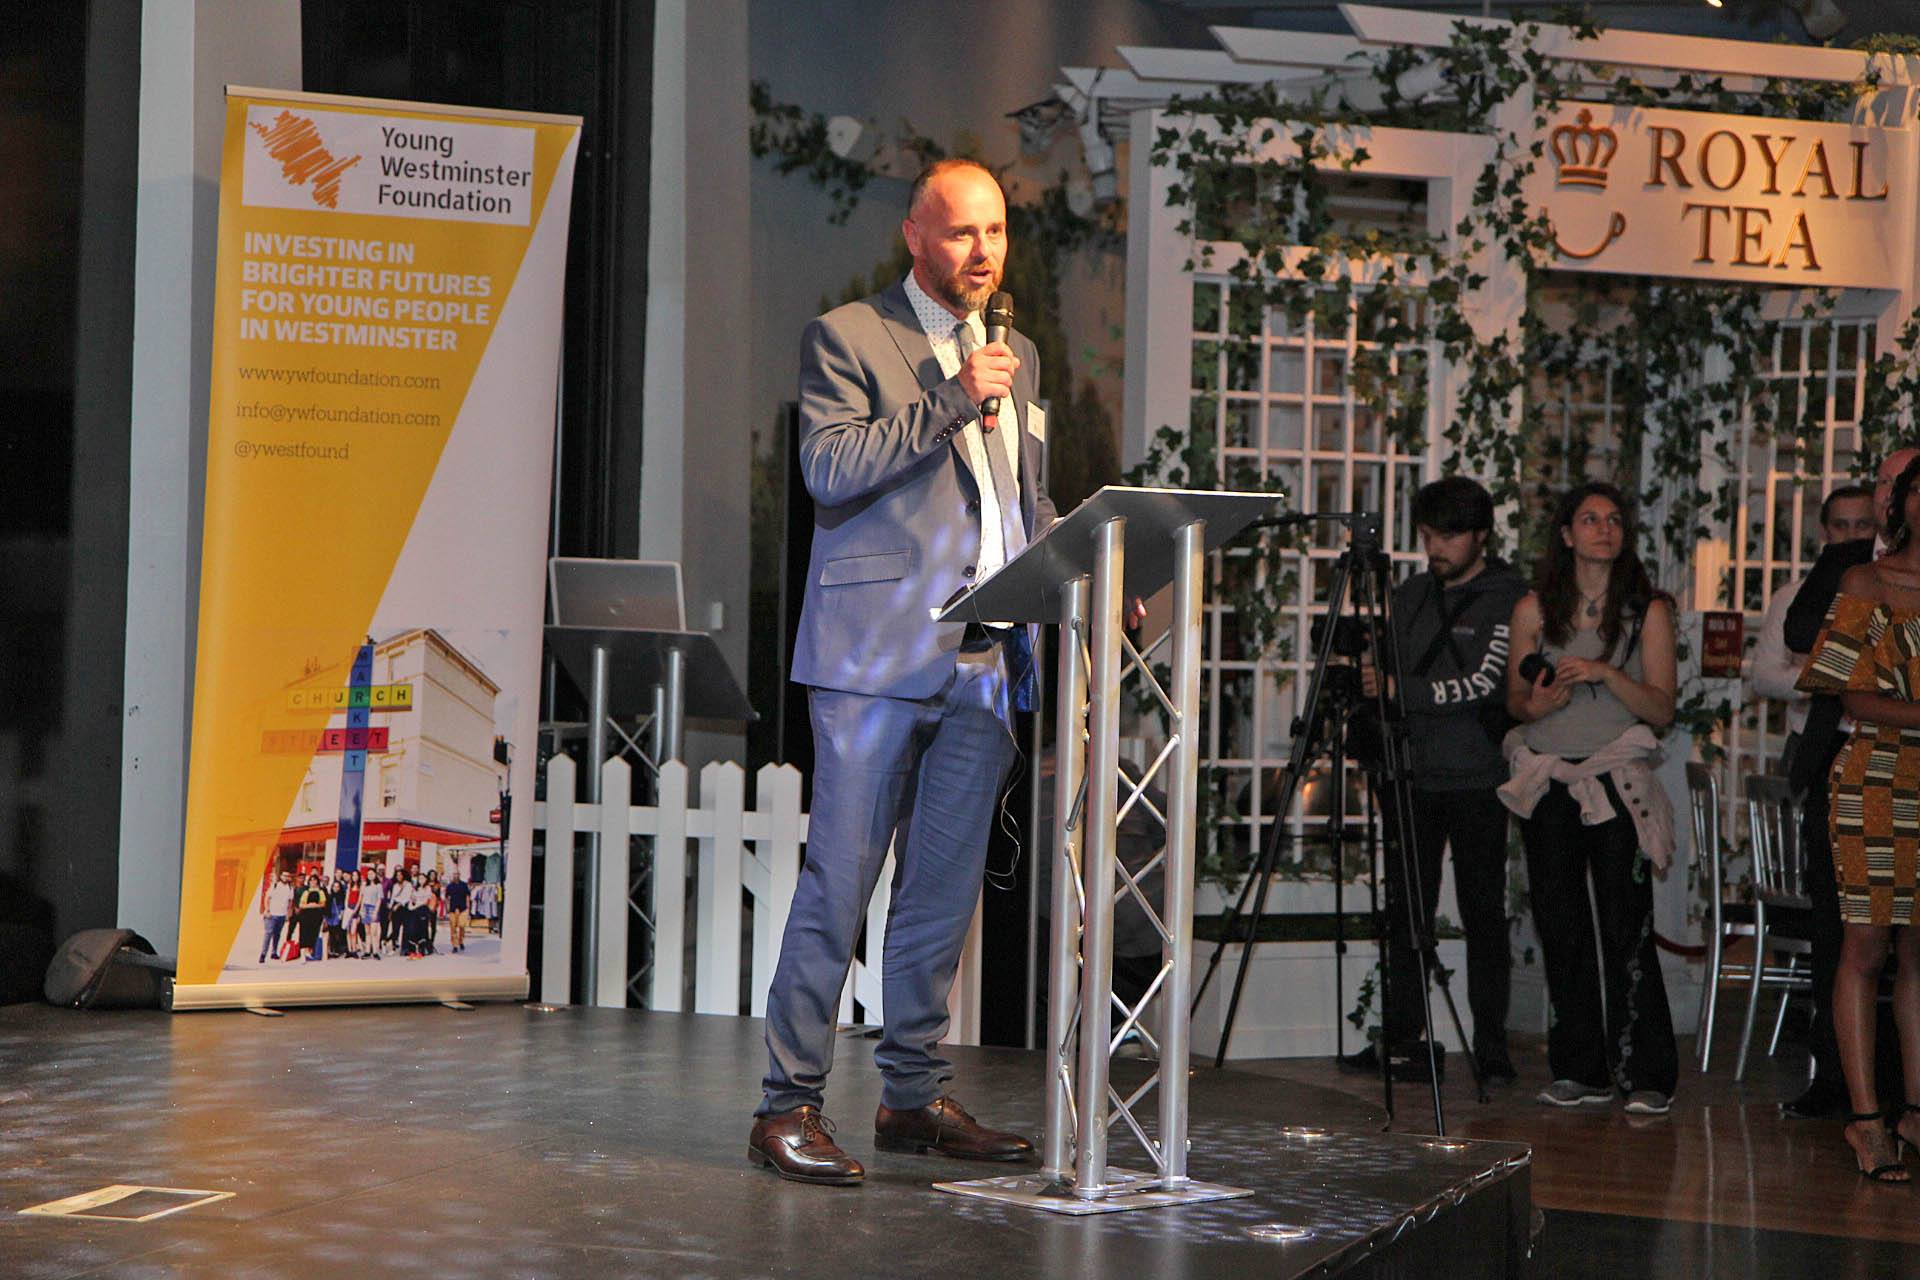 YWF Launch: 'City Within A City' event at Madame Tussauds